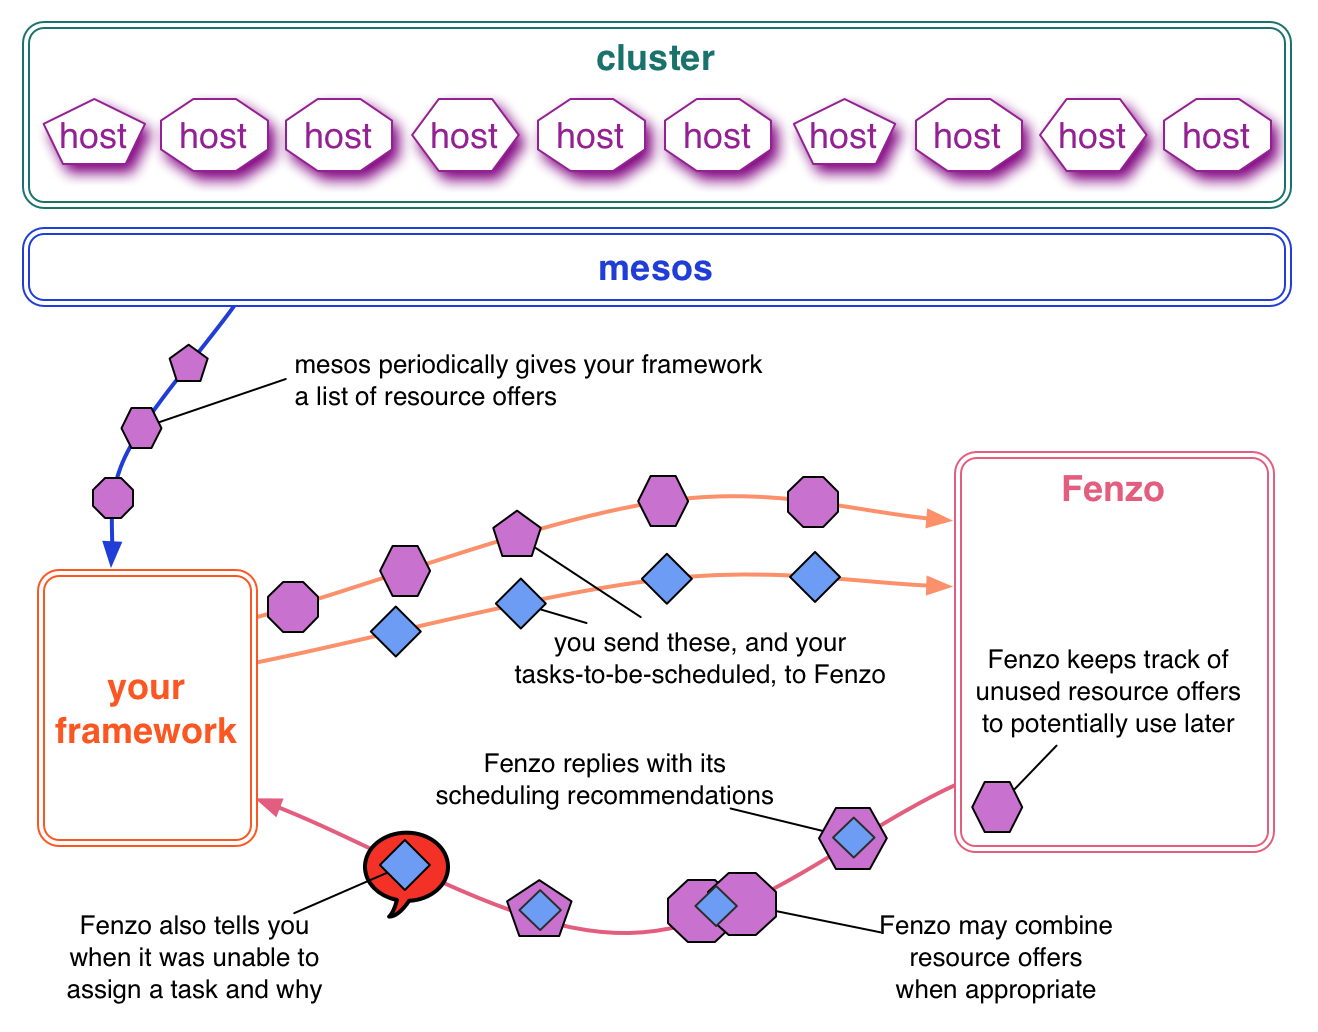 How Fenzo fits in with Mesos and your framework